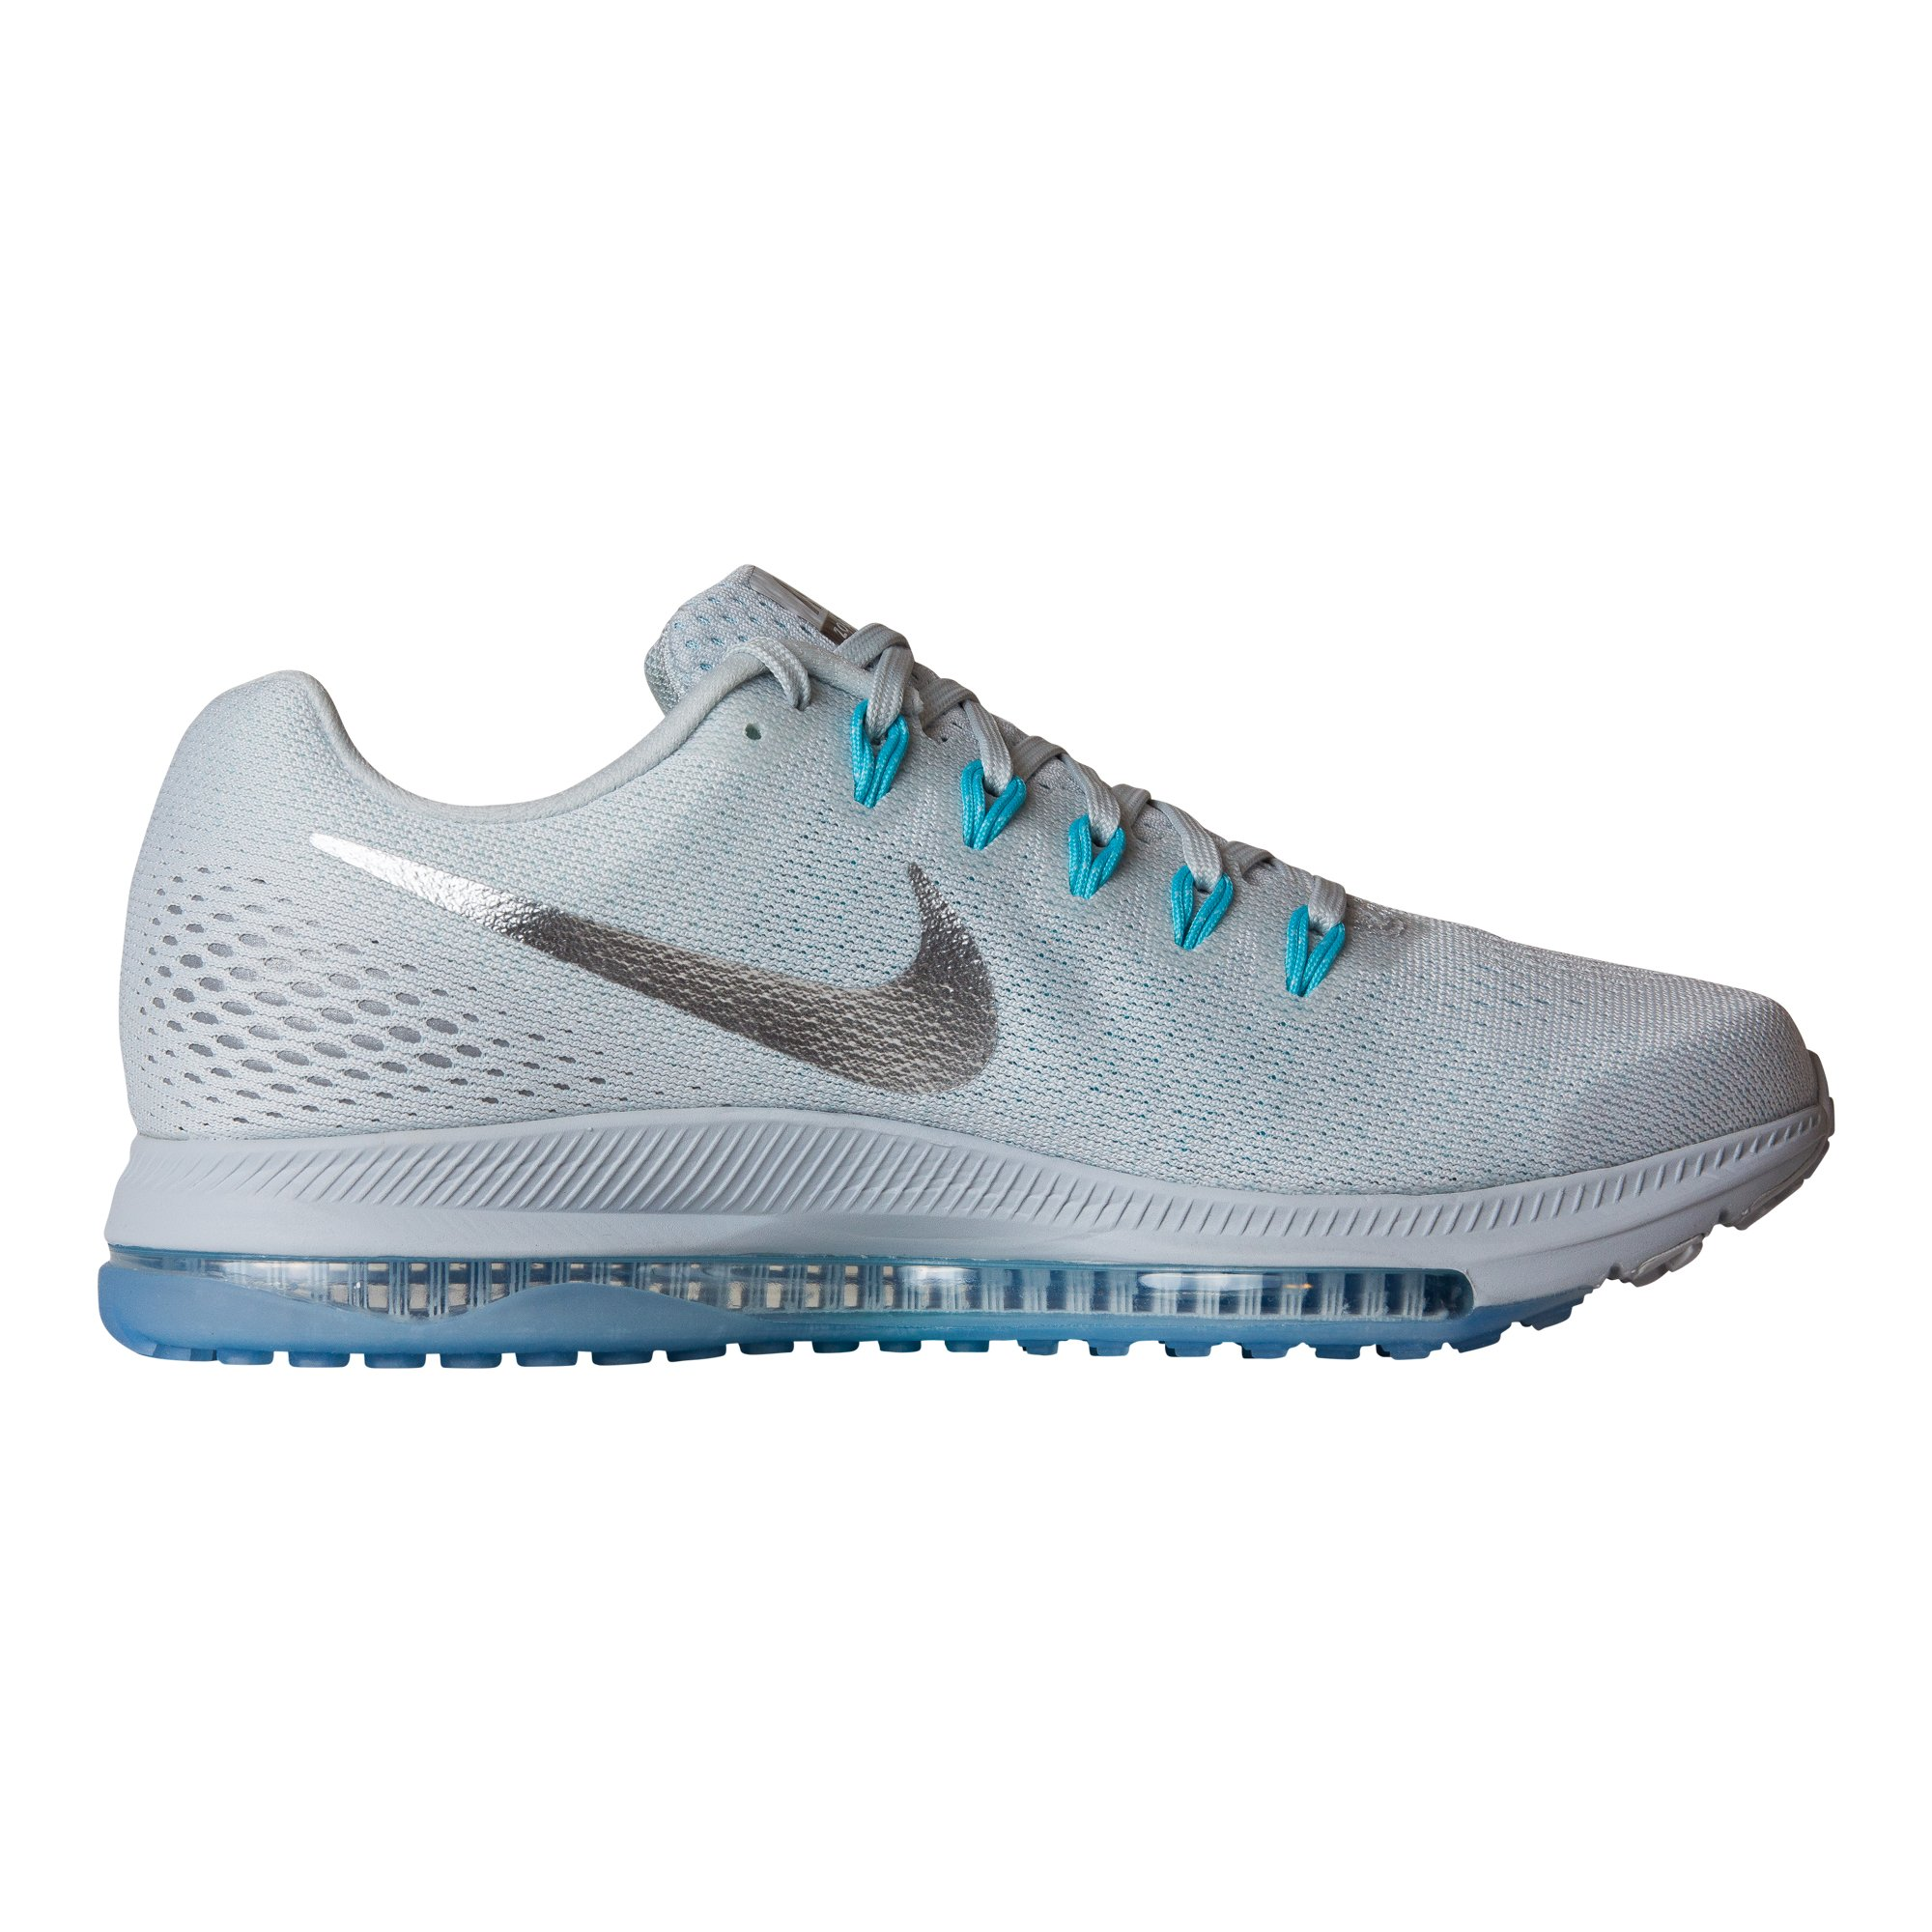 Nike Zoom All Out Low Size 7.5 Womens Running Pure Platinum/Chrome-Glacier Blue Shoes by NIKE (Image #4)